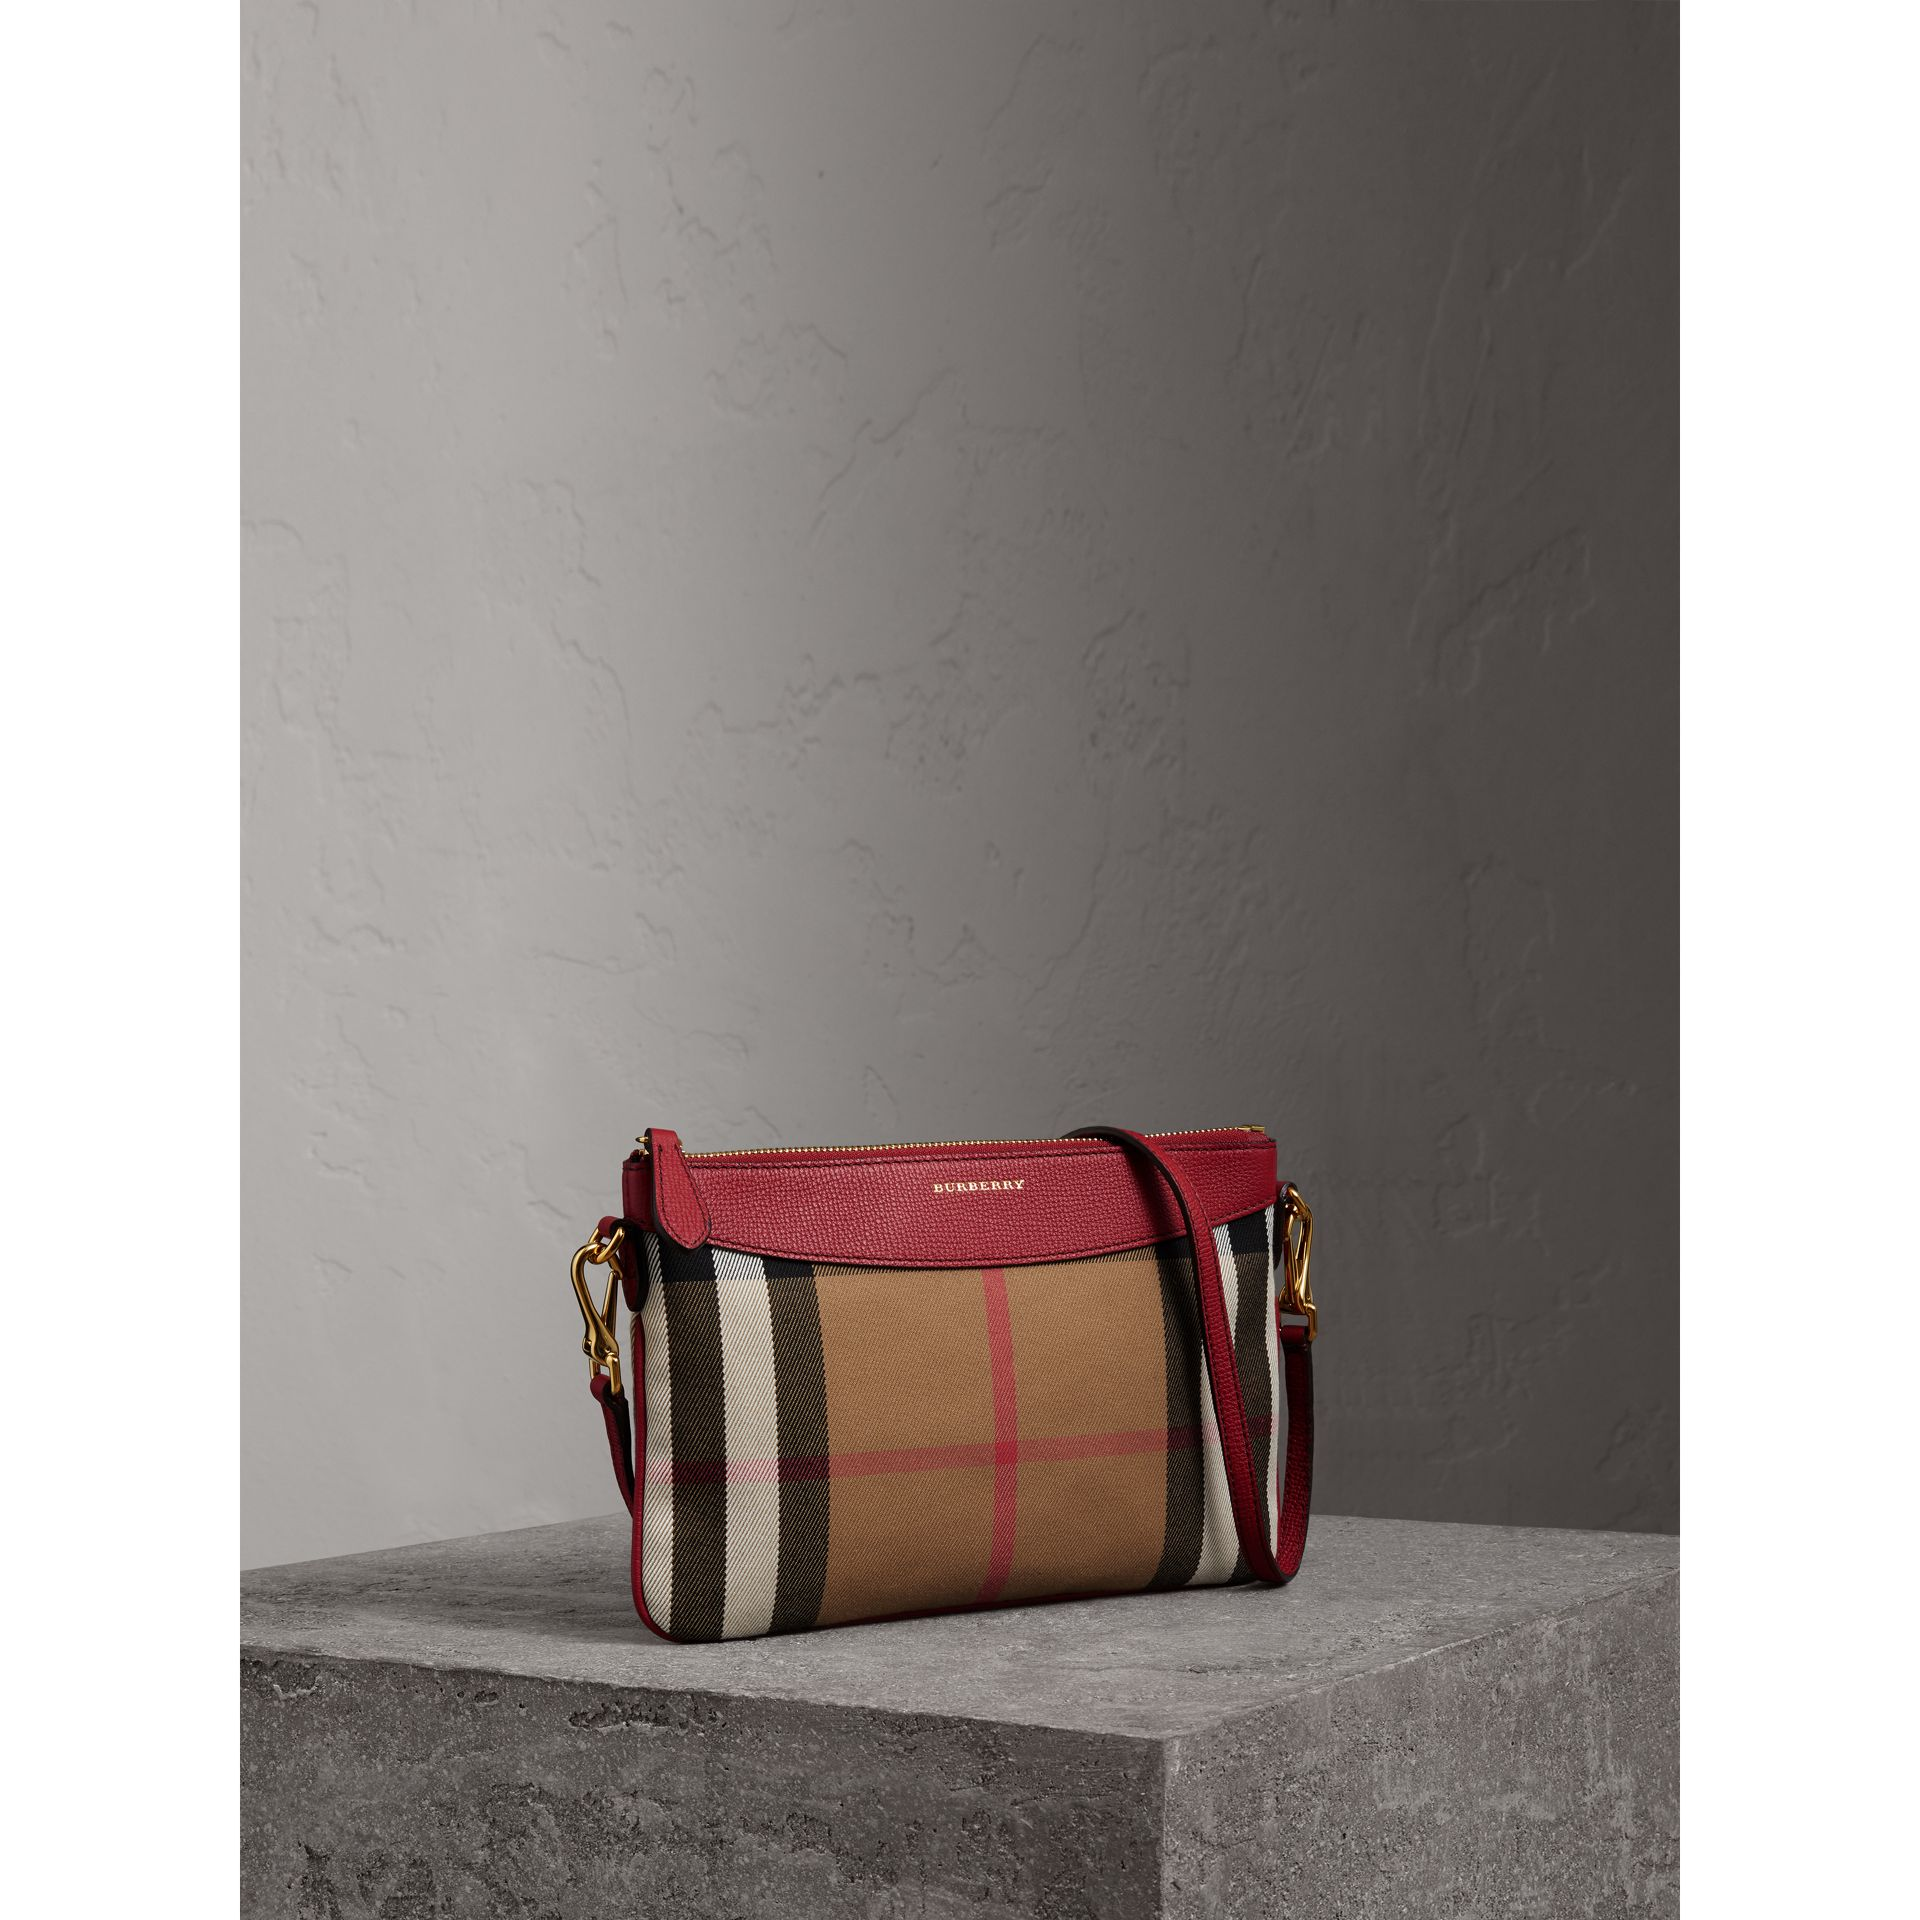 House Check and Leather Clutch Bag in Military Red - Women | Burberry Singapore - gallery image 6